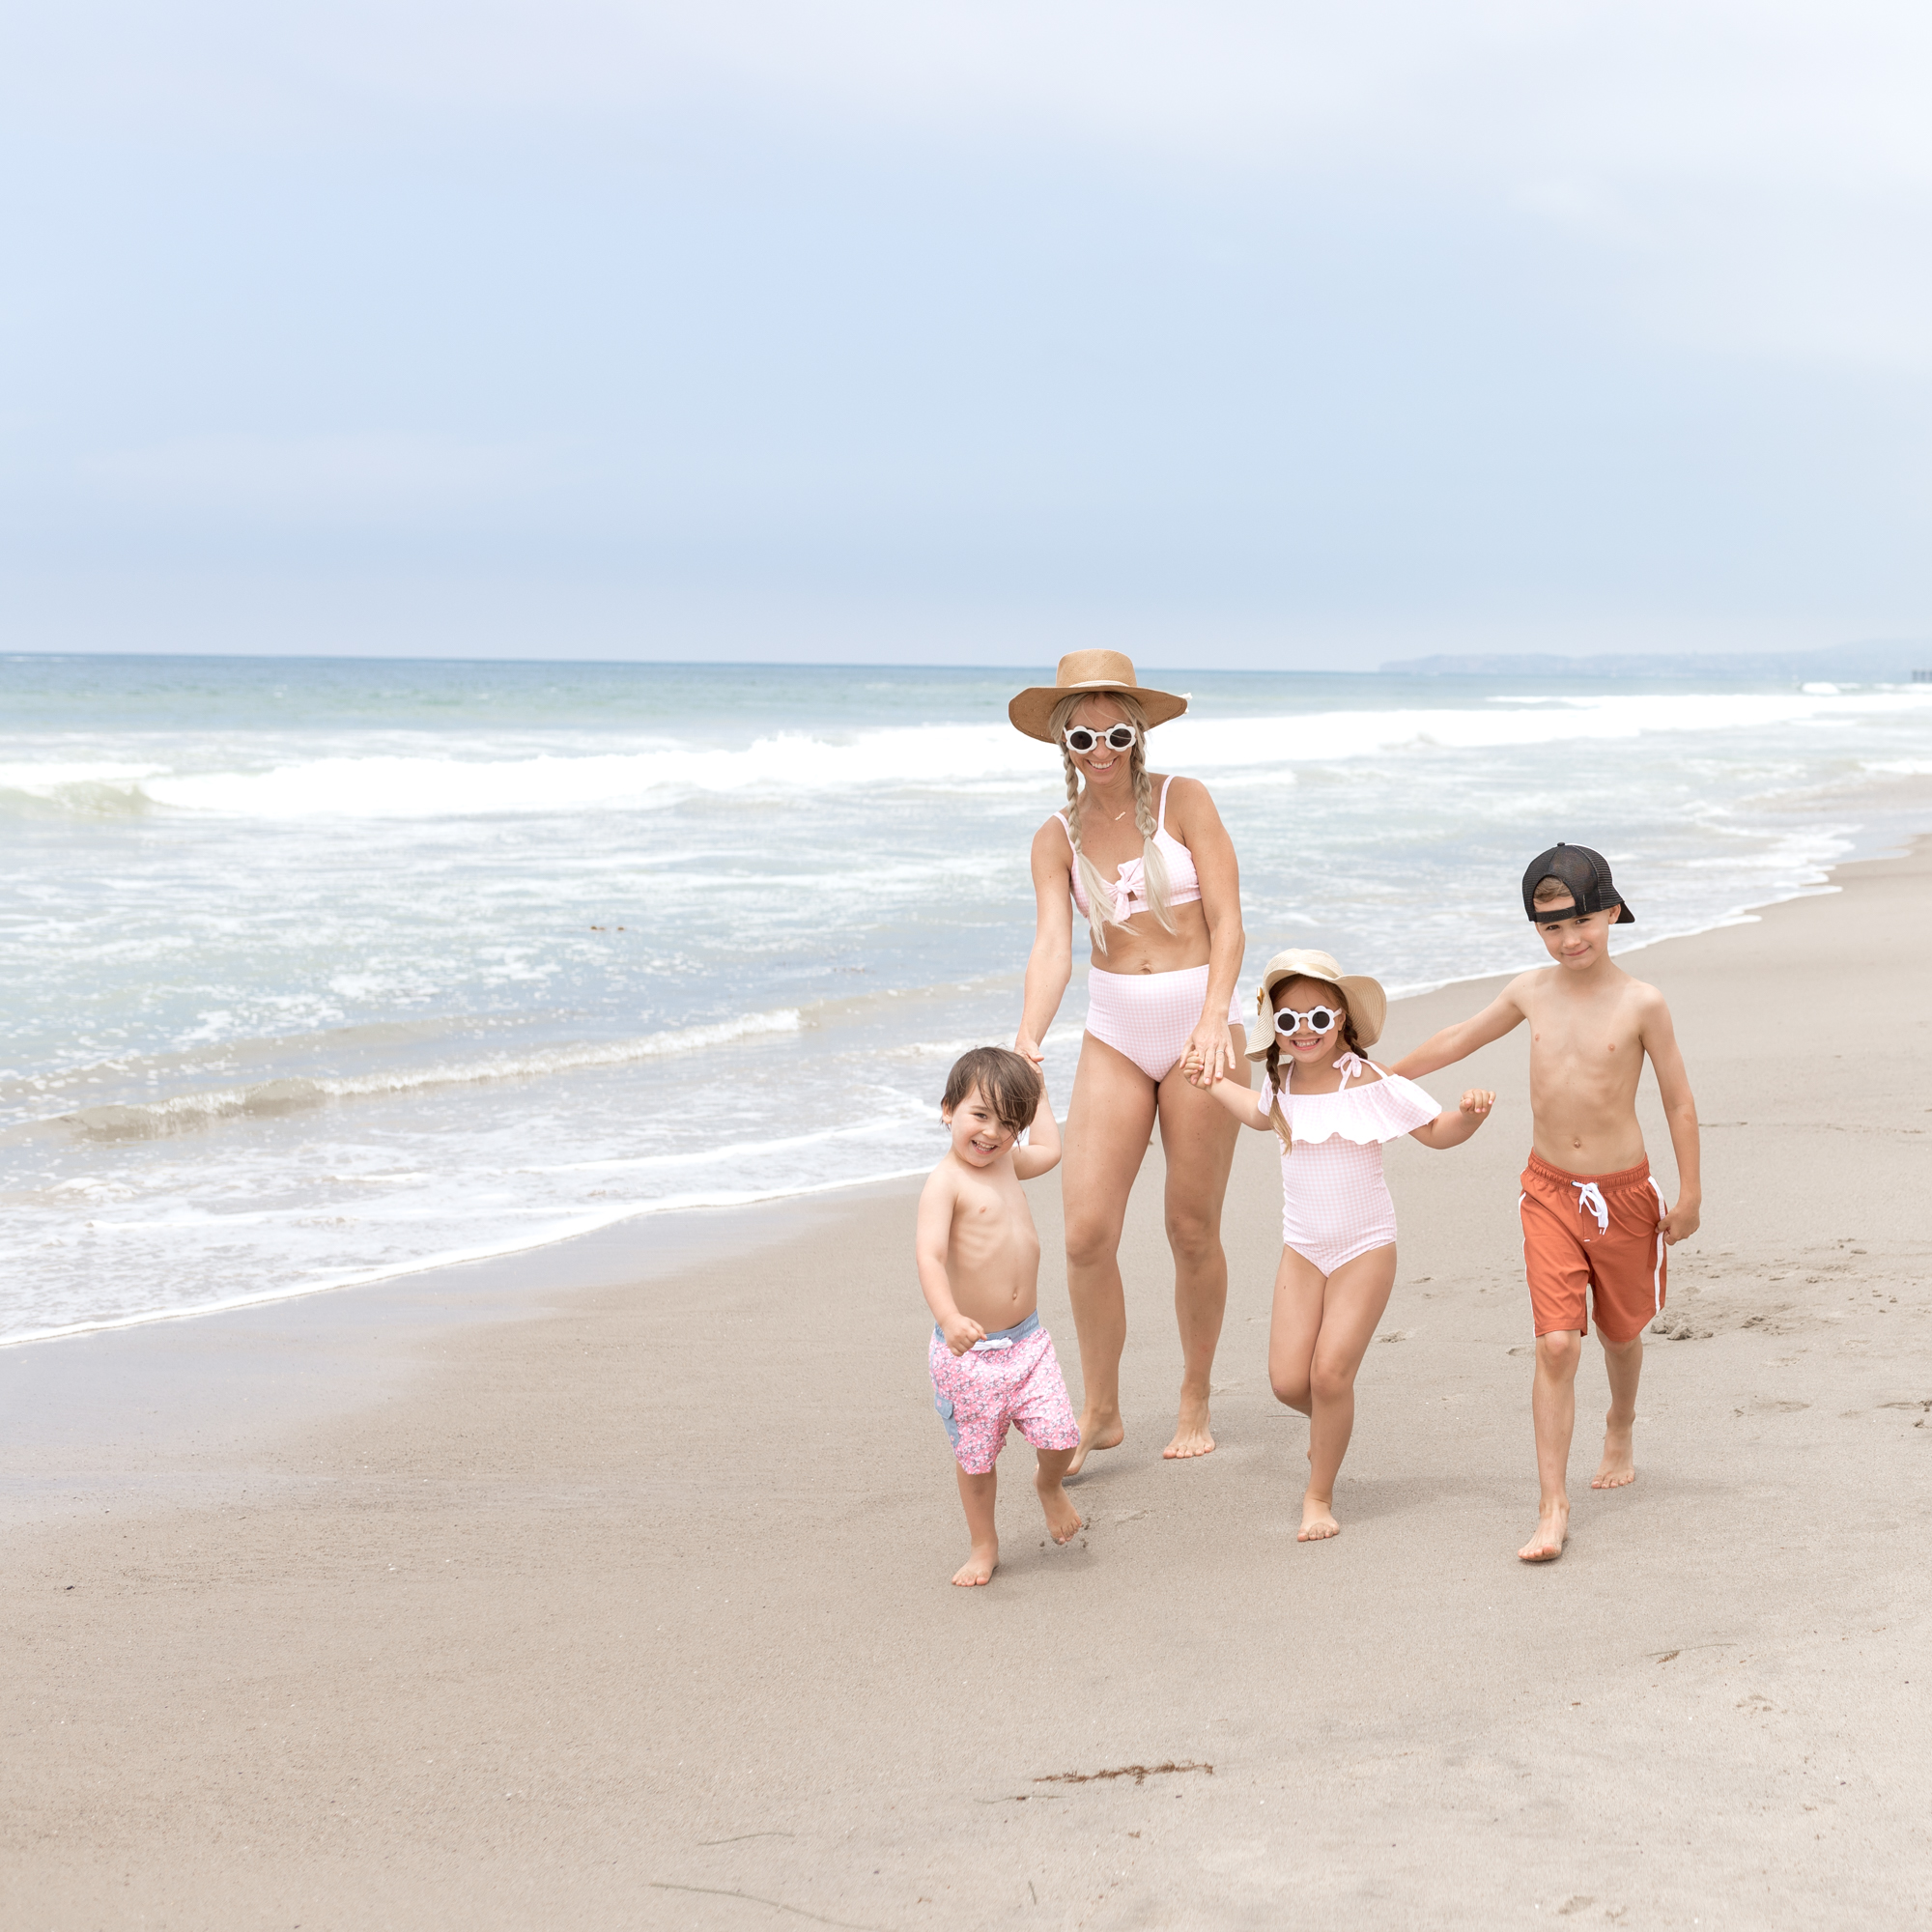 mom and three kids walking on the beach in swimsuits